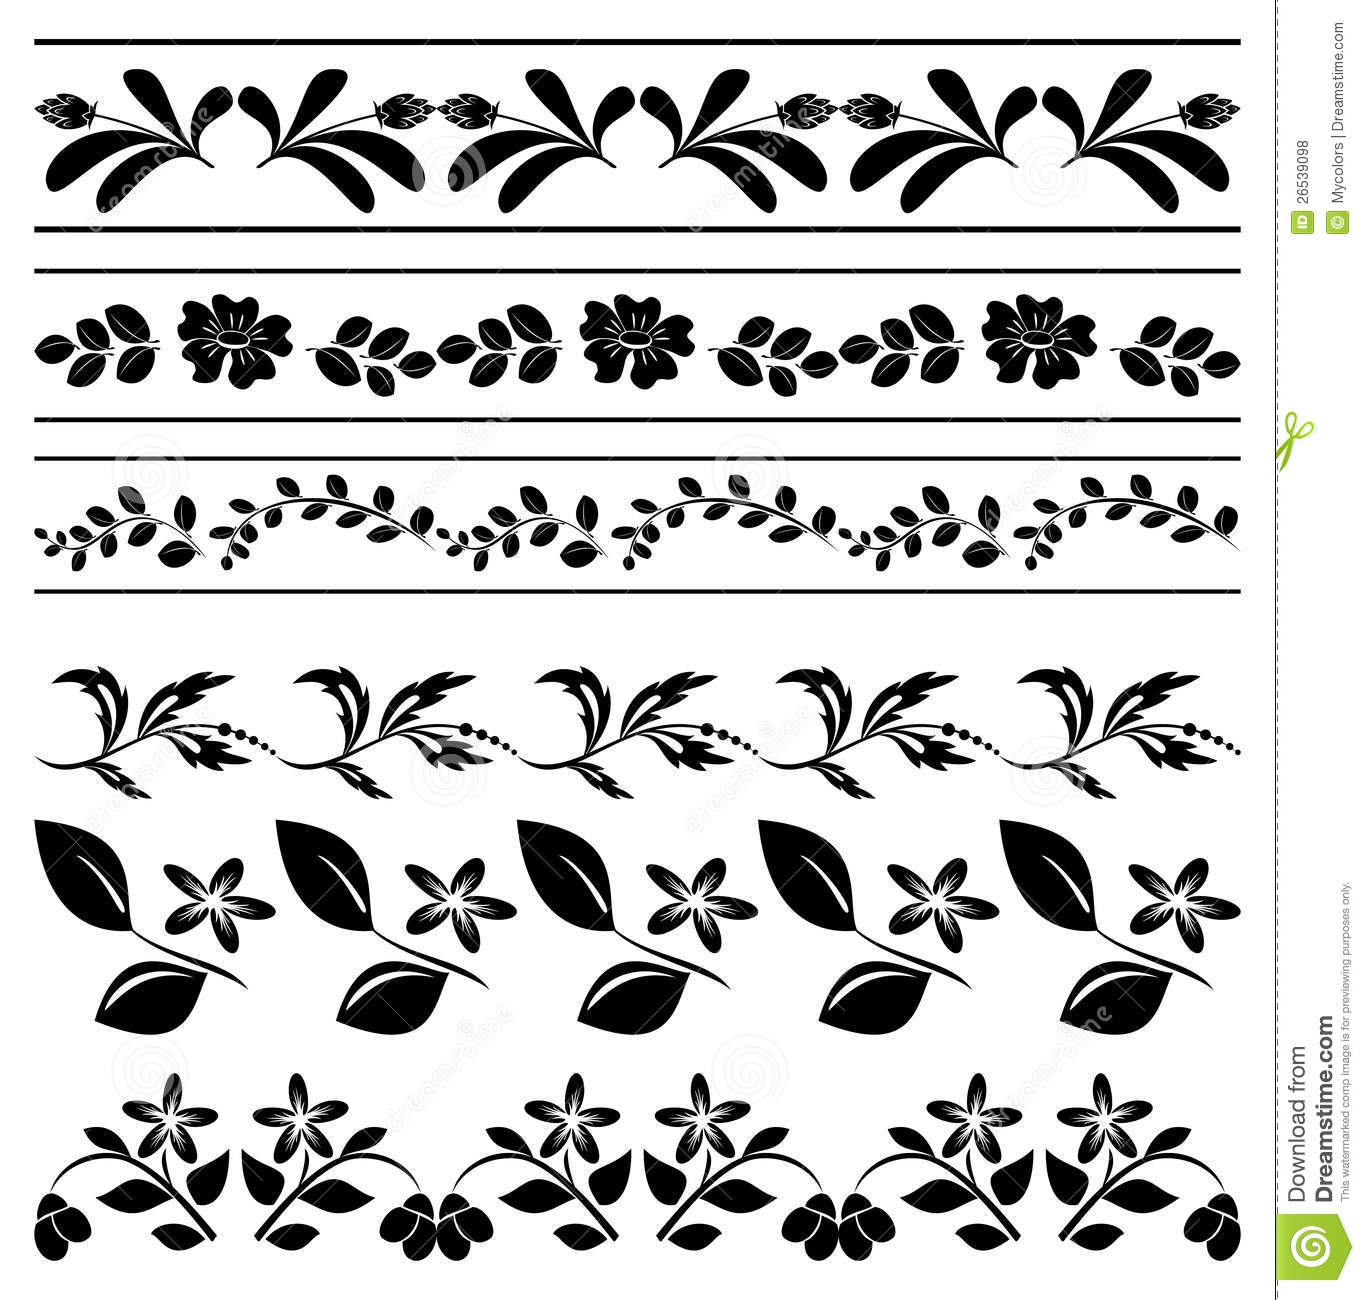 Floral borders free download graphic royalty free Floral Borders - Black Tracery - Vector Royalty Free Stock Photos ... graphic royalty free